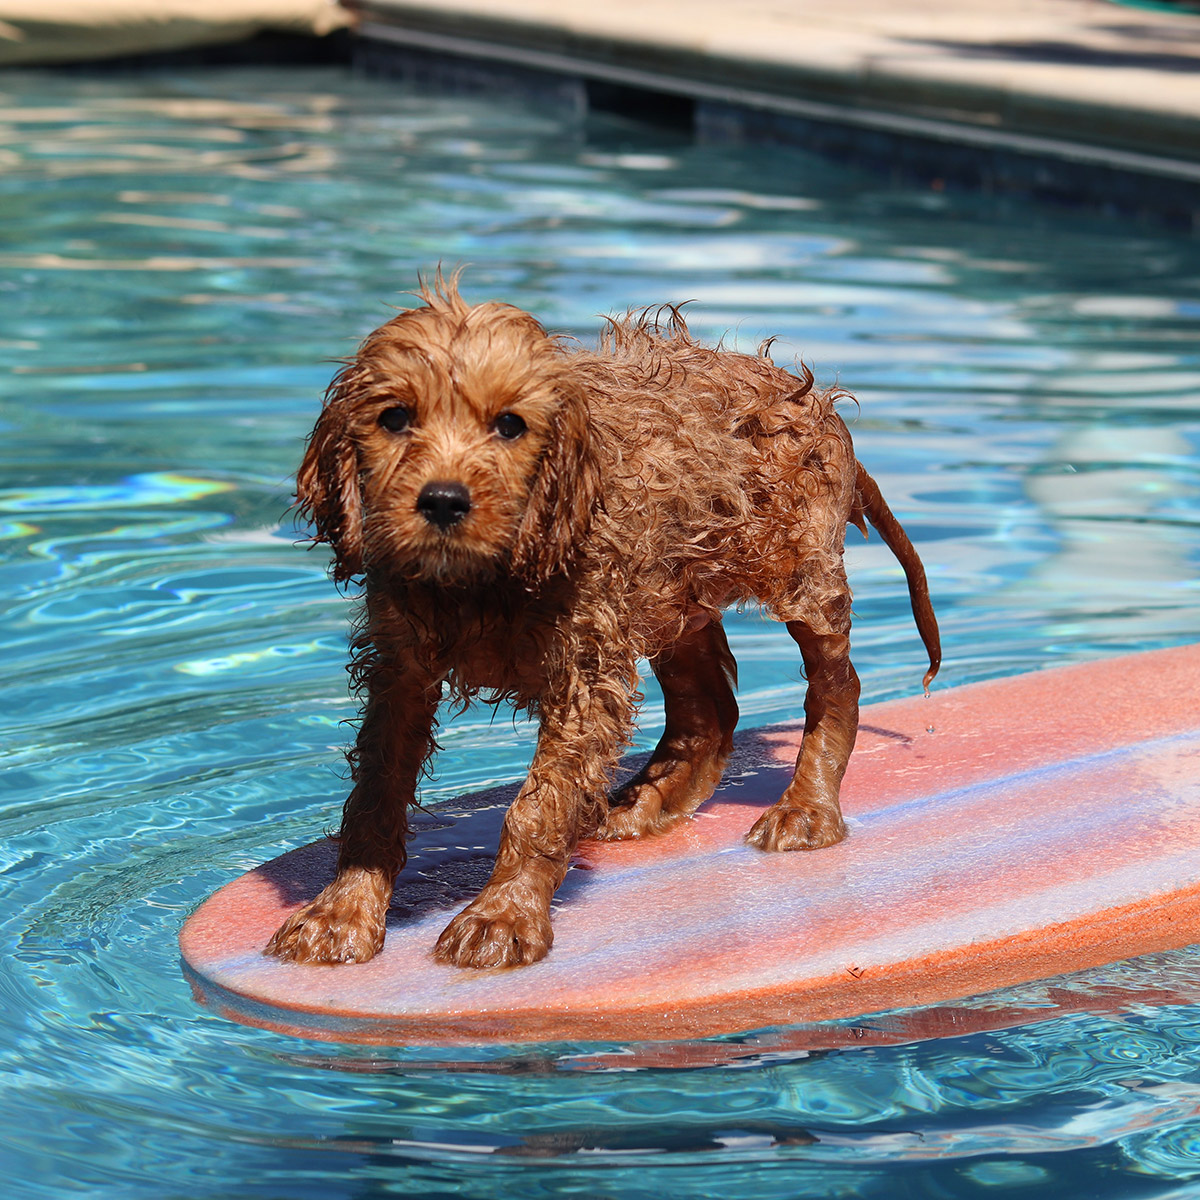 cute brown dog with wet fur on red surf board in swimming pool